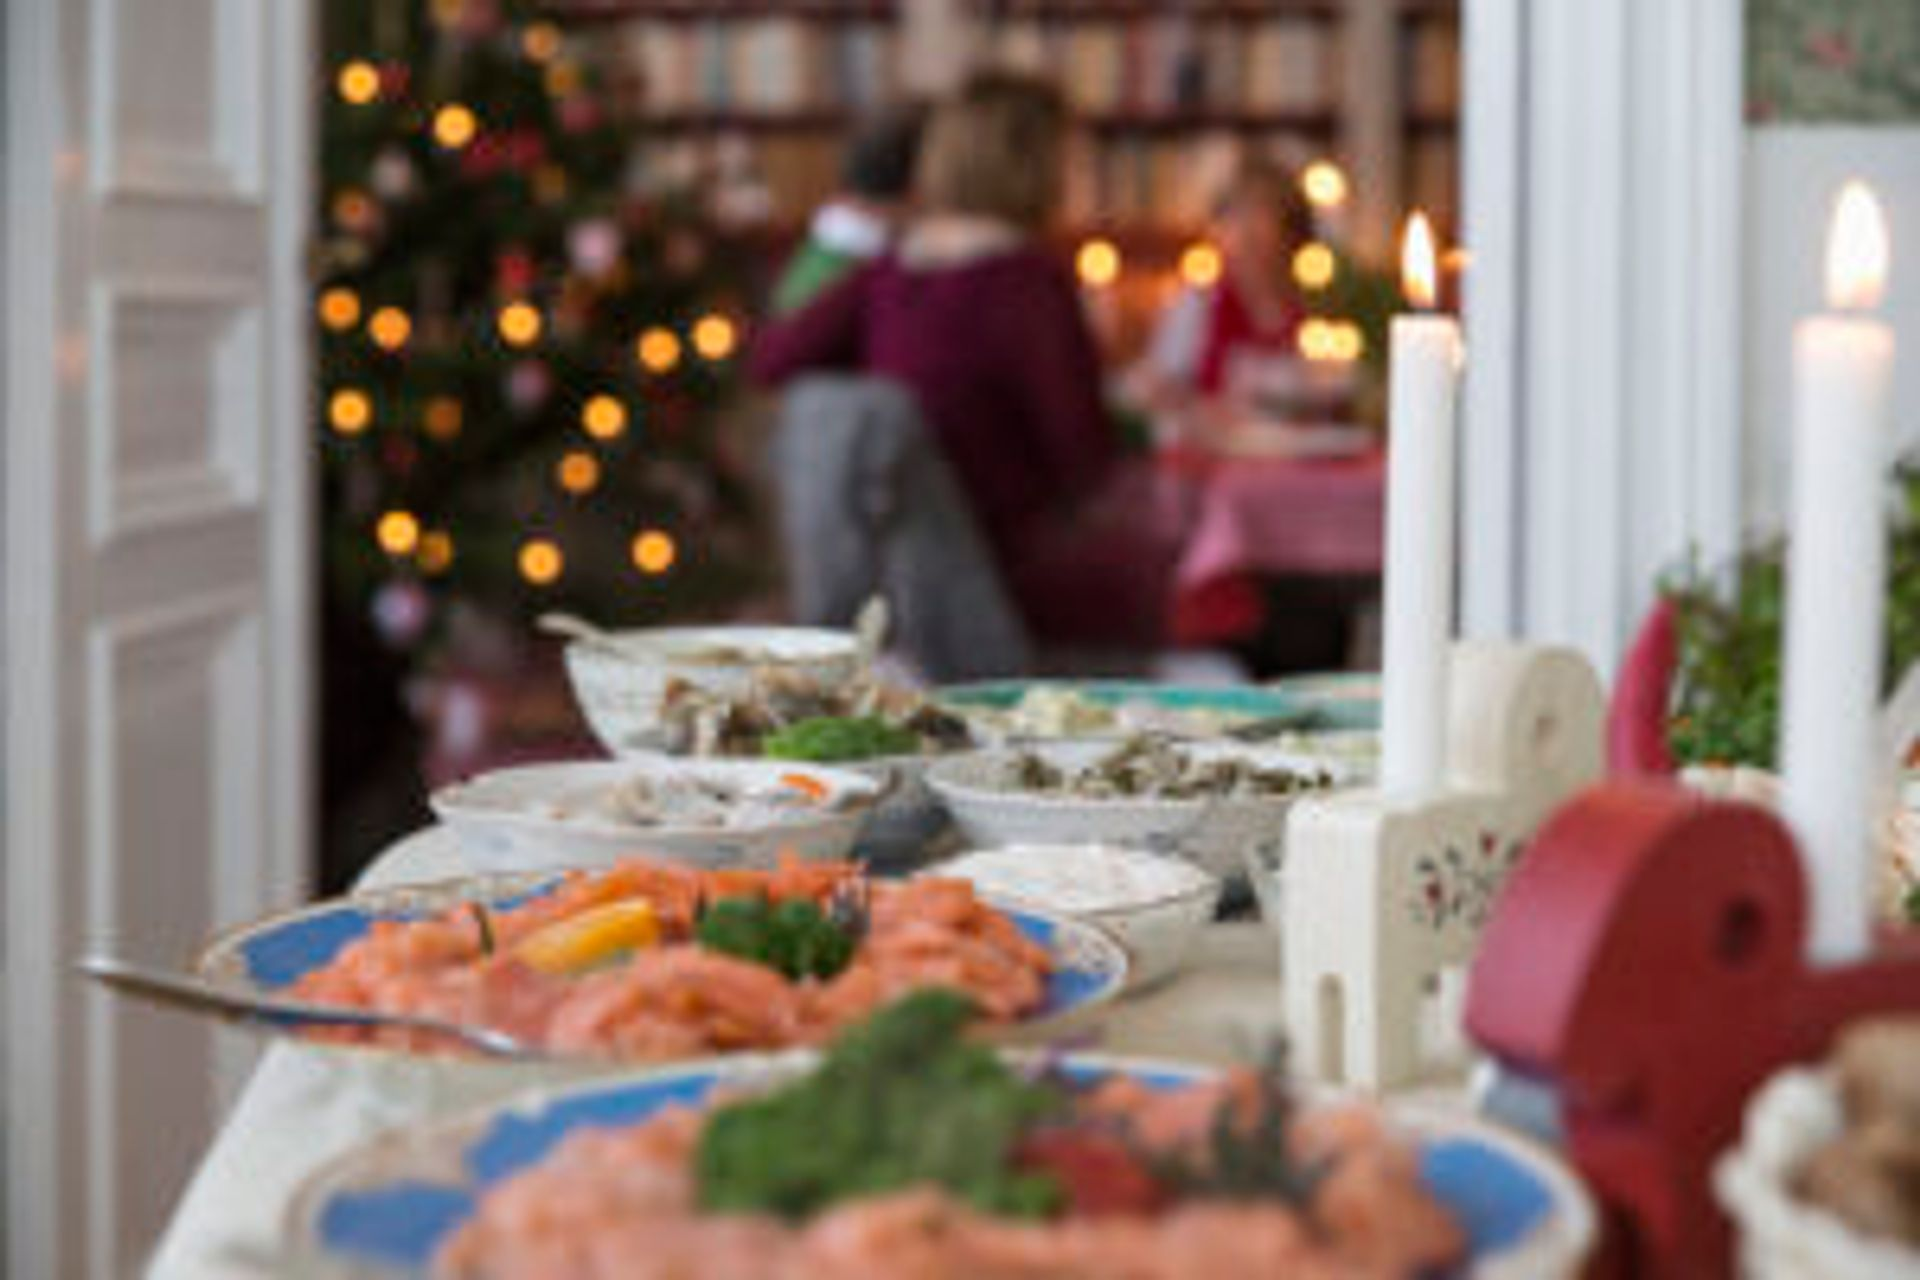 A Swedish Christmas smorgåsbord. A family eating Christmas dinner in the background.